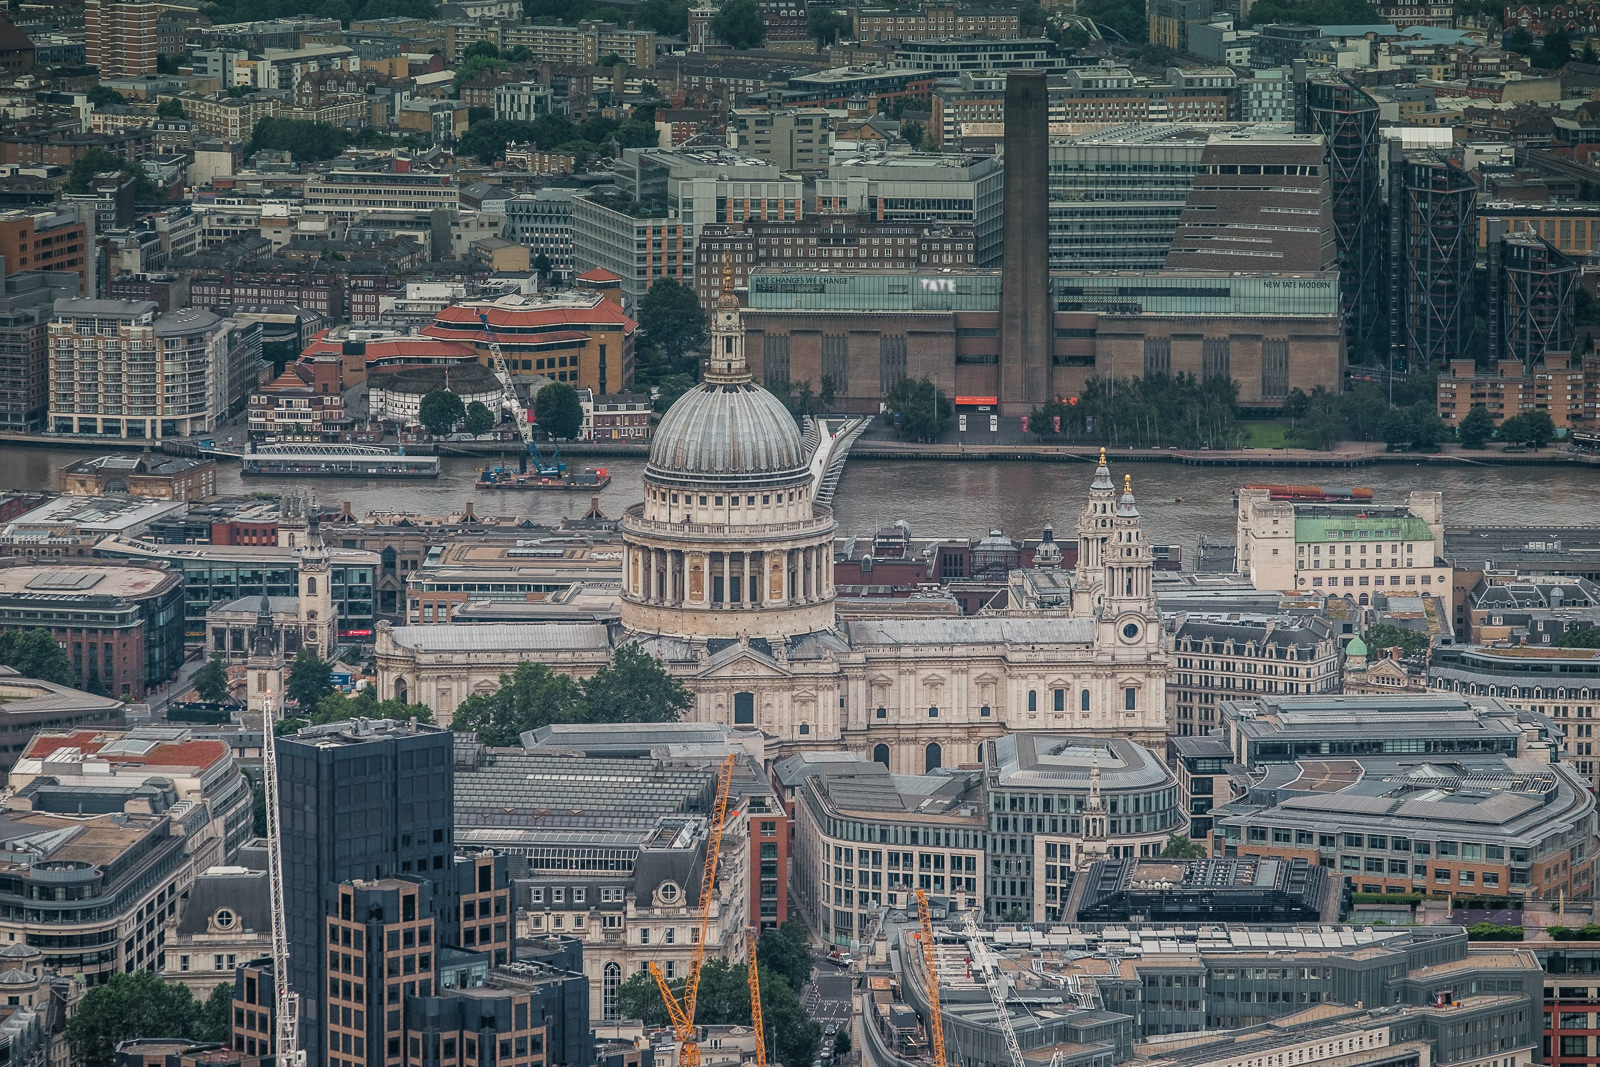 St Paul's Cathedral and Tate Modern. ISO500 50-140mm f5.6 1/250s